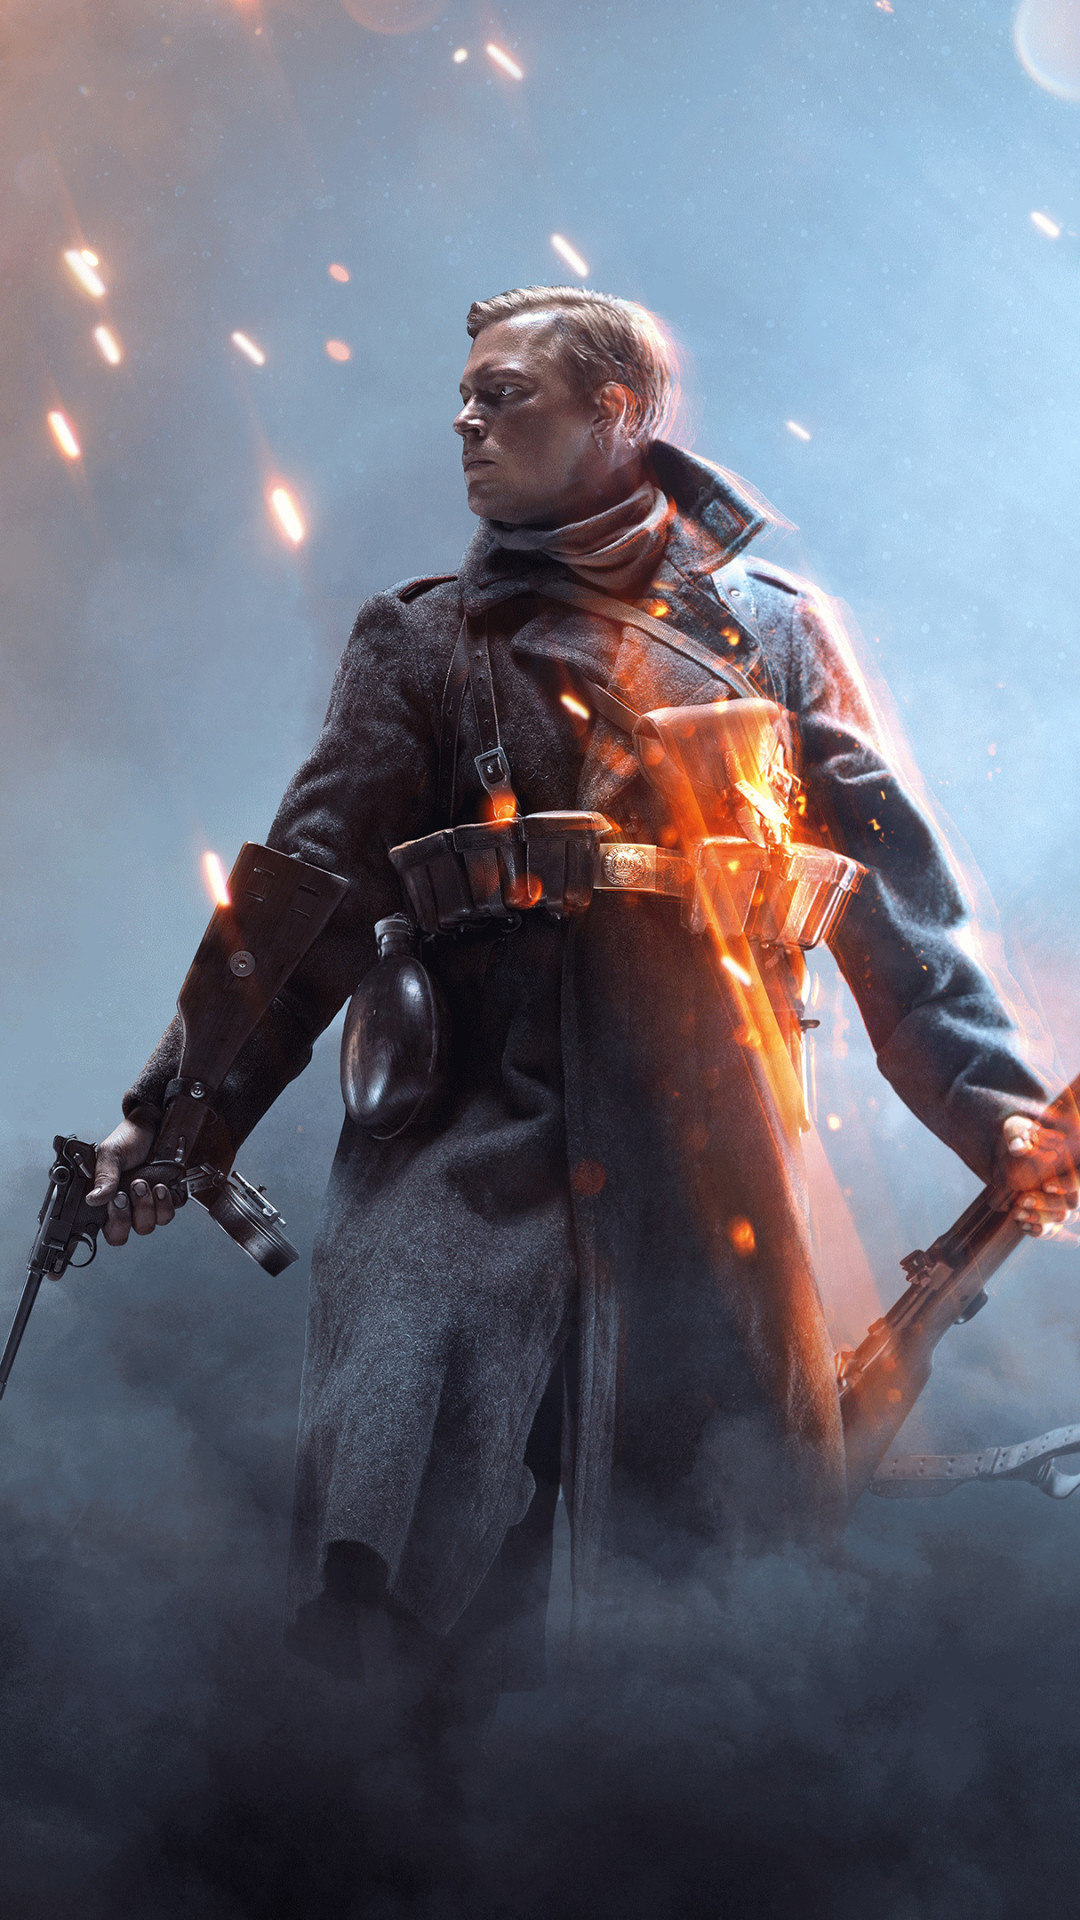 1080x1920 Download this Wallpaper iPhone 5S - Video Game/Battlefield 1 ()  for all